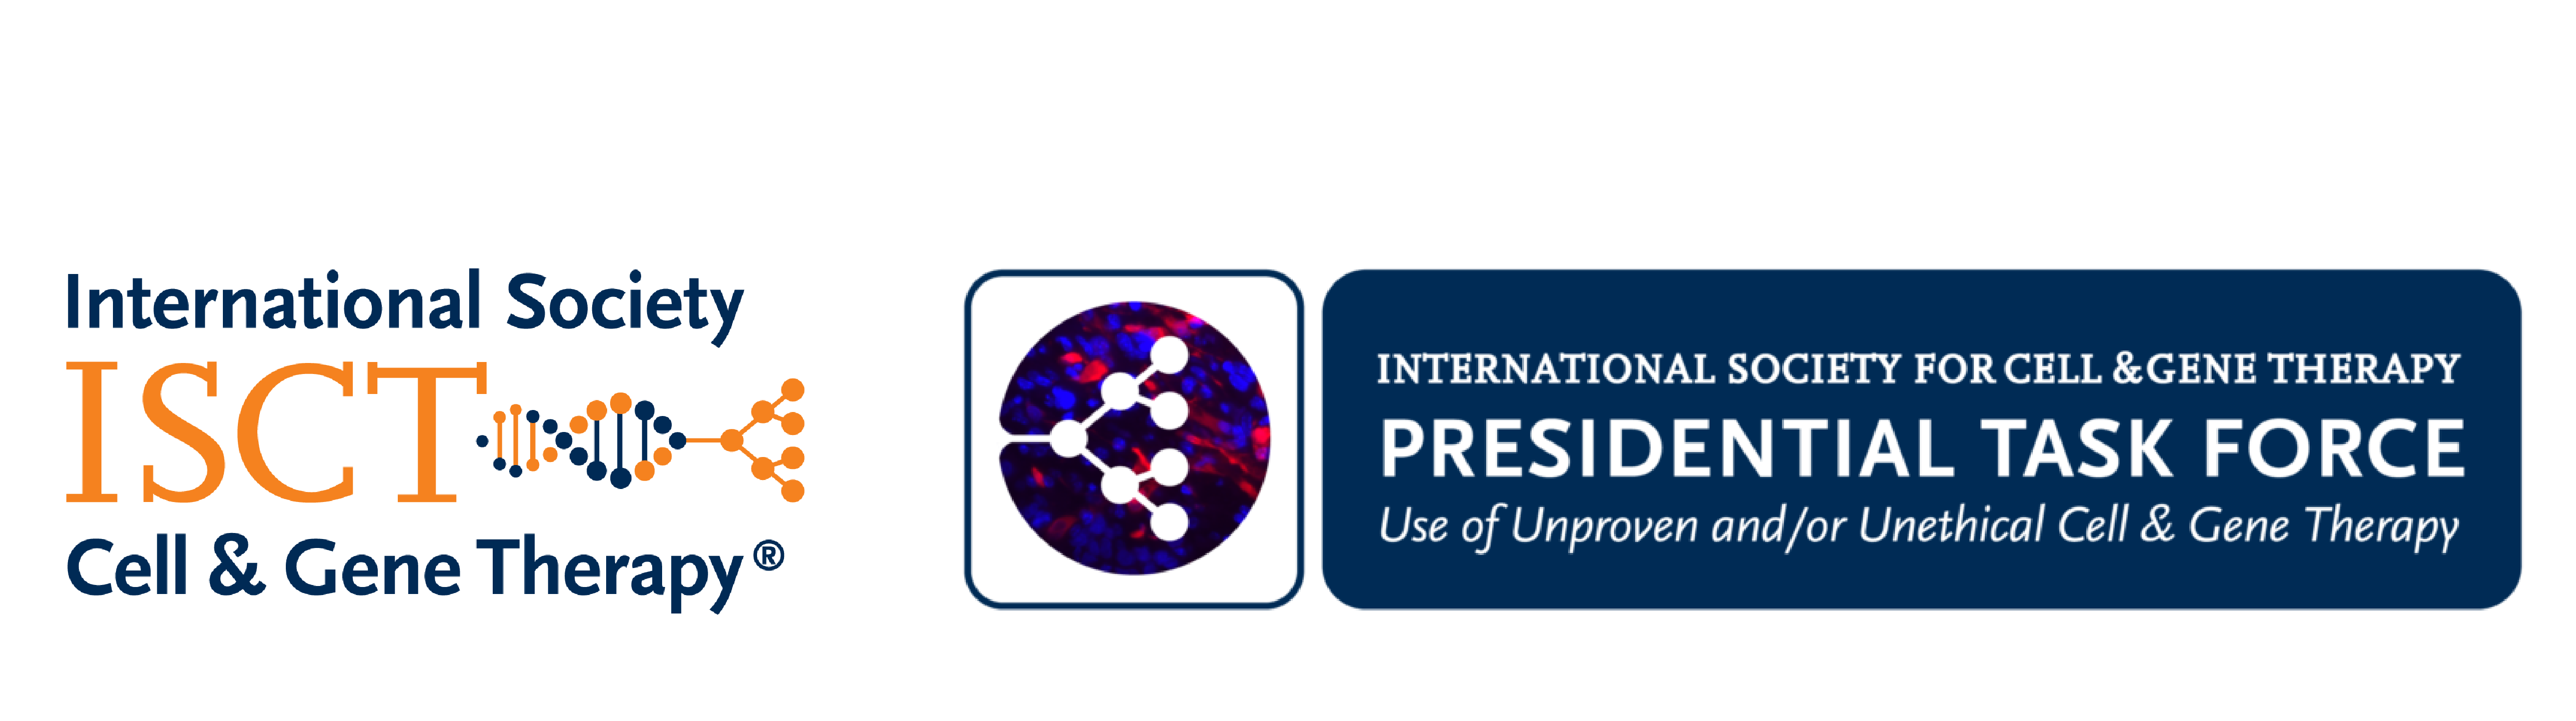 ISCT PRESIDENTIAL TASK FORCE